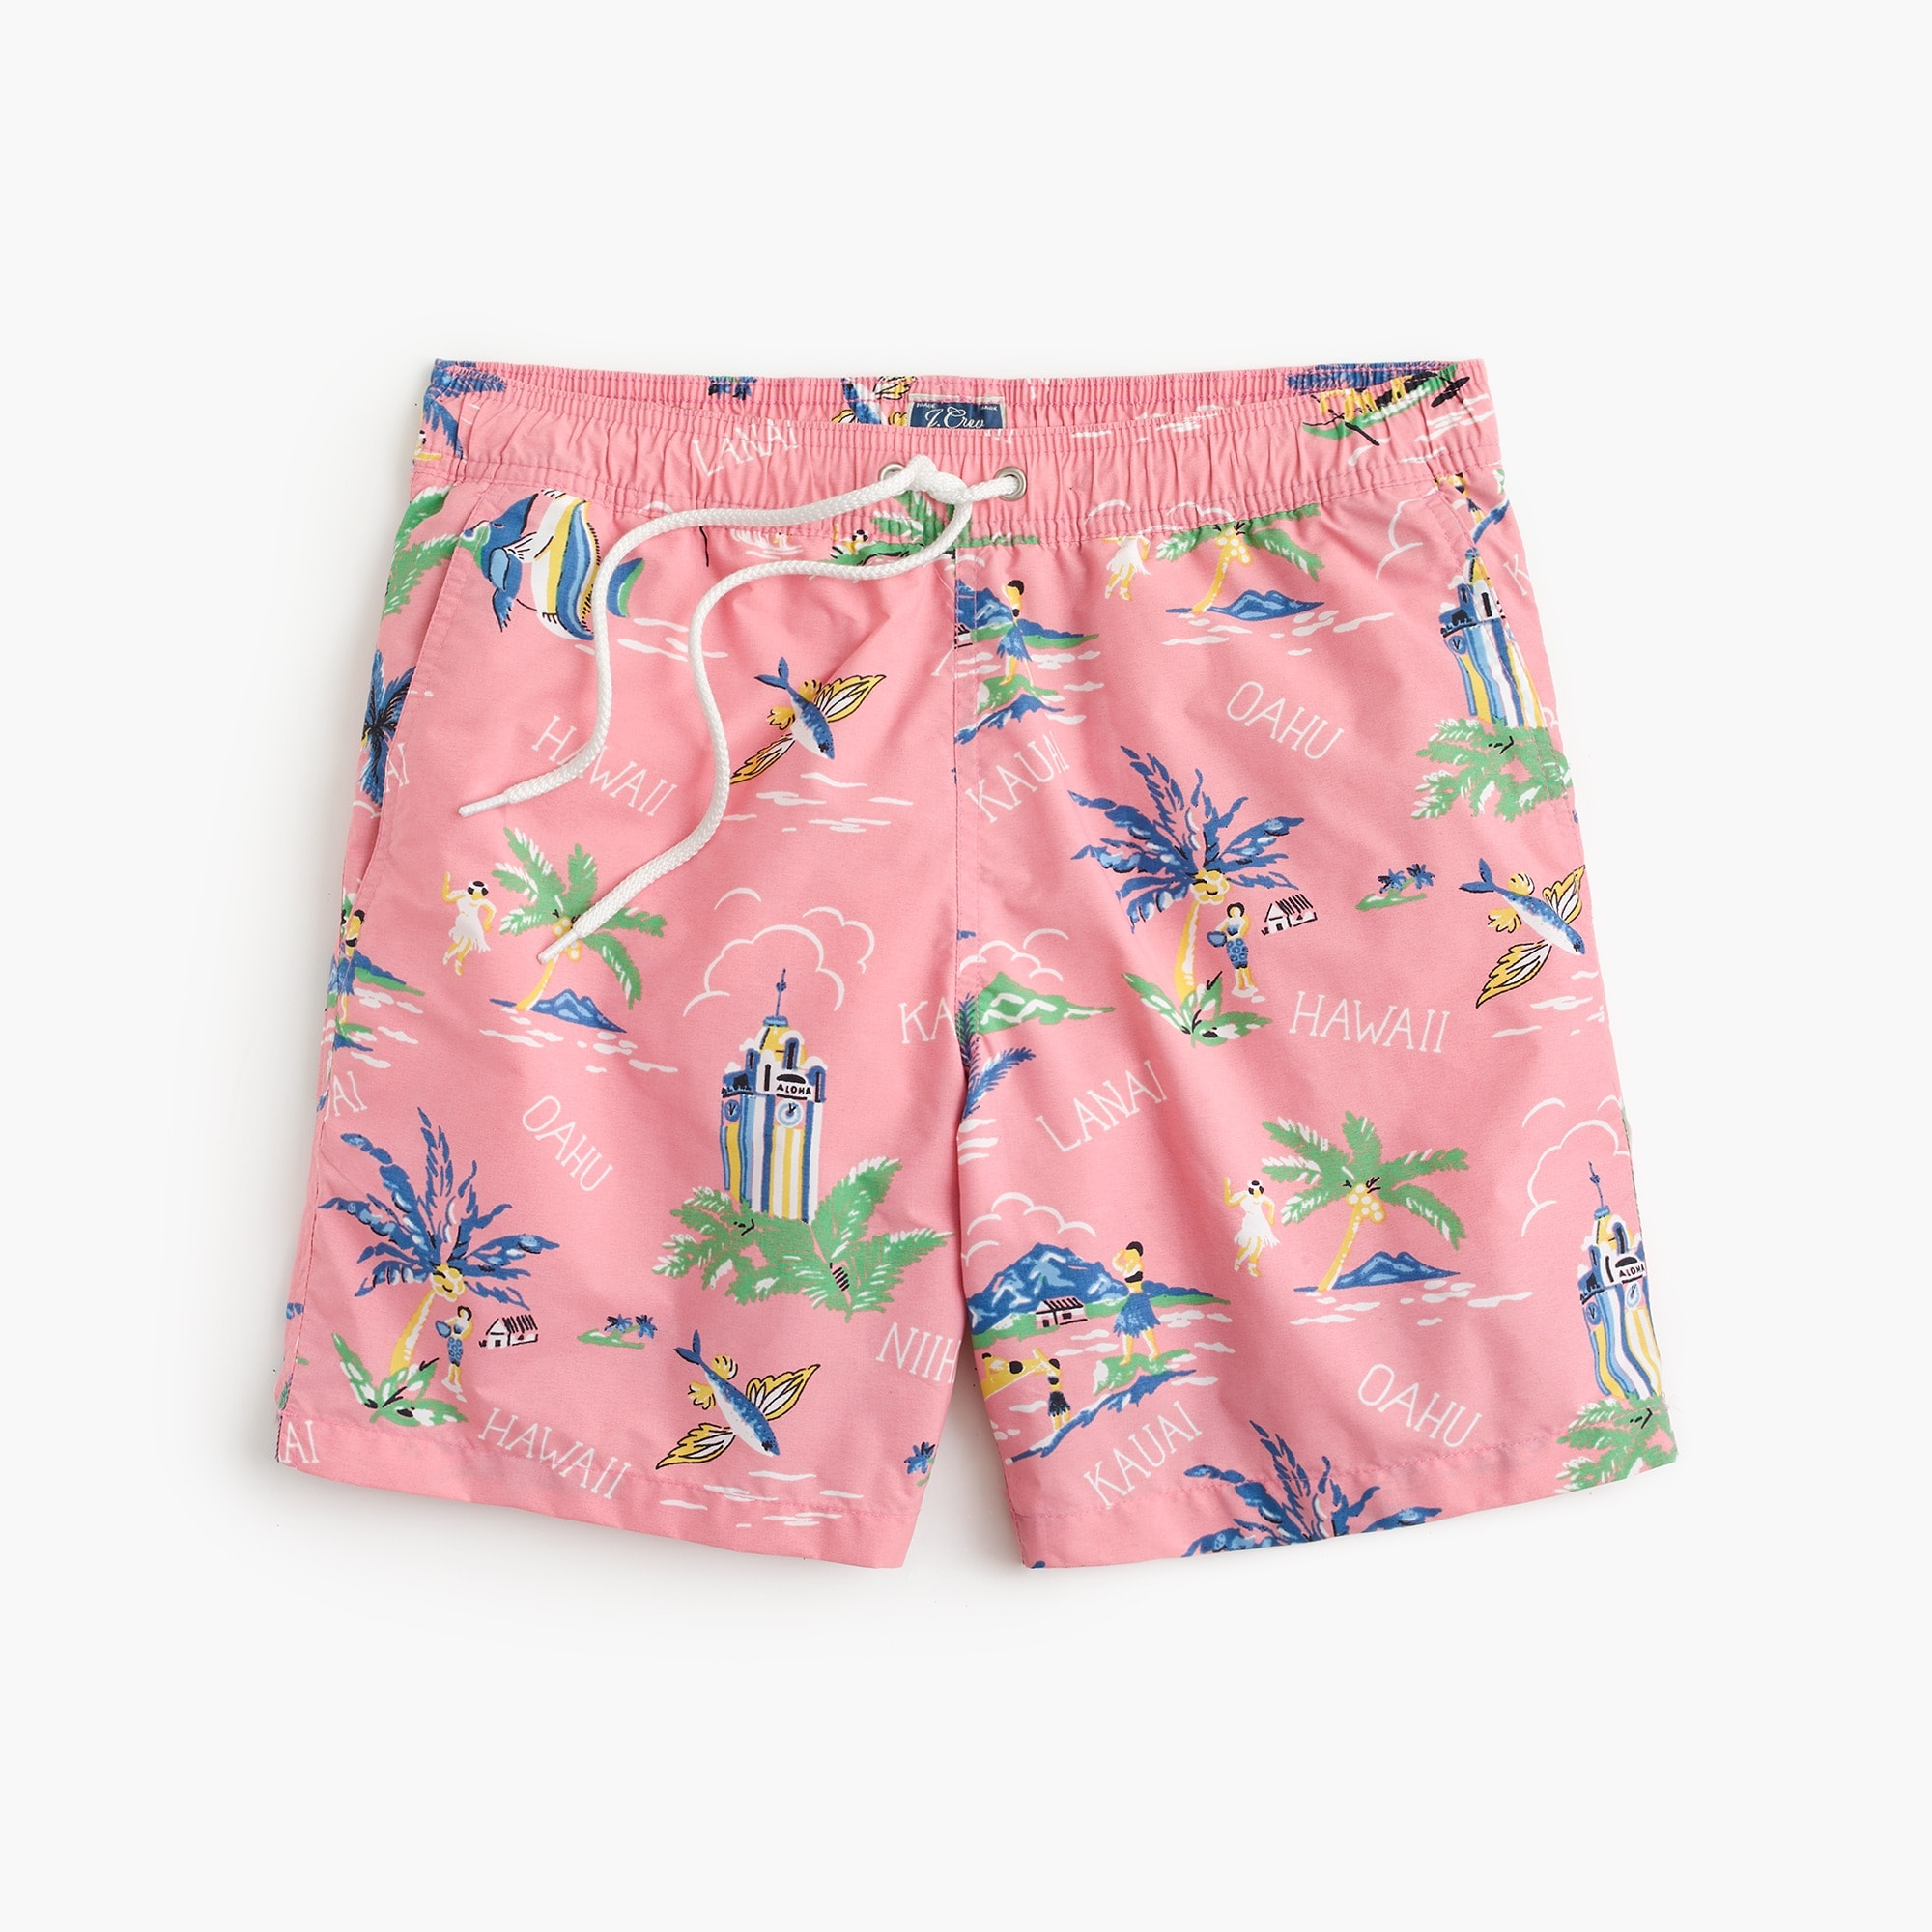 "mens 6"" swim trunk in Hawaii print"